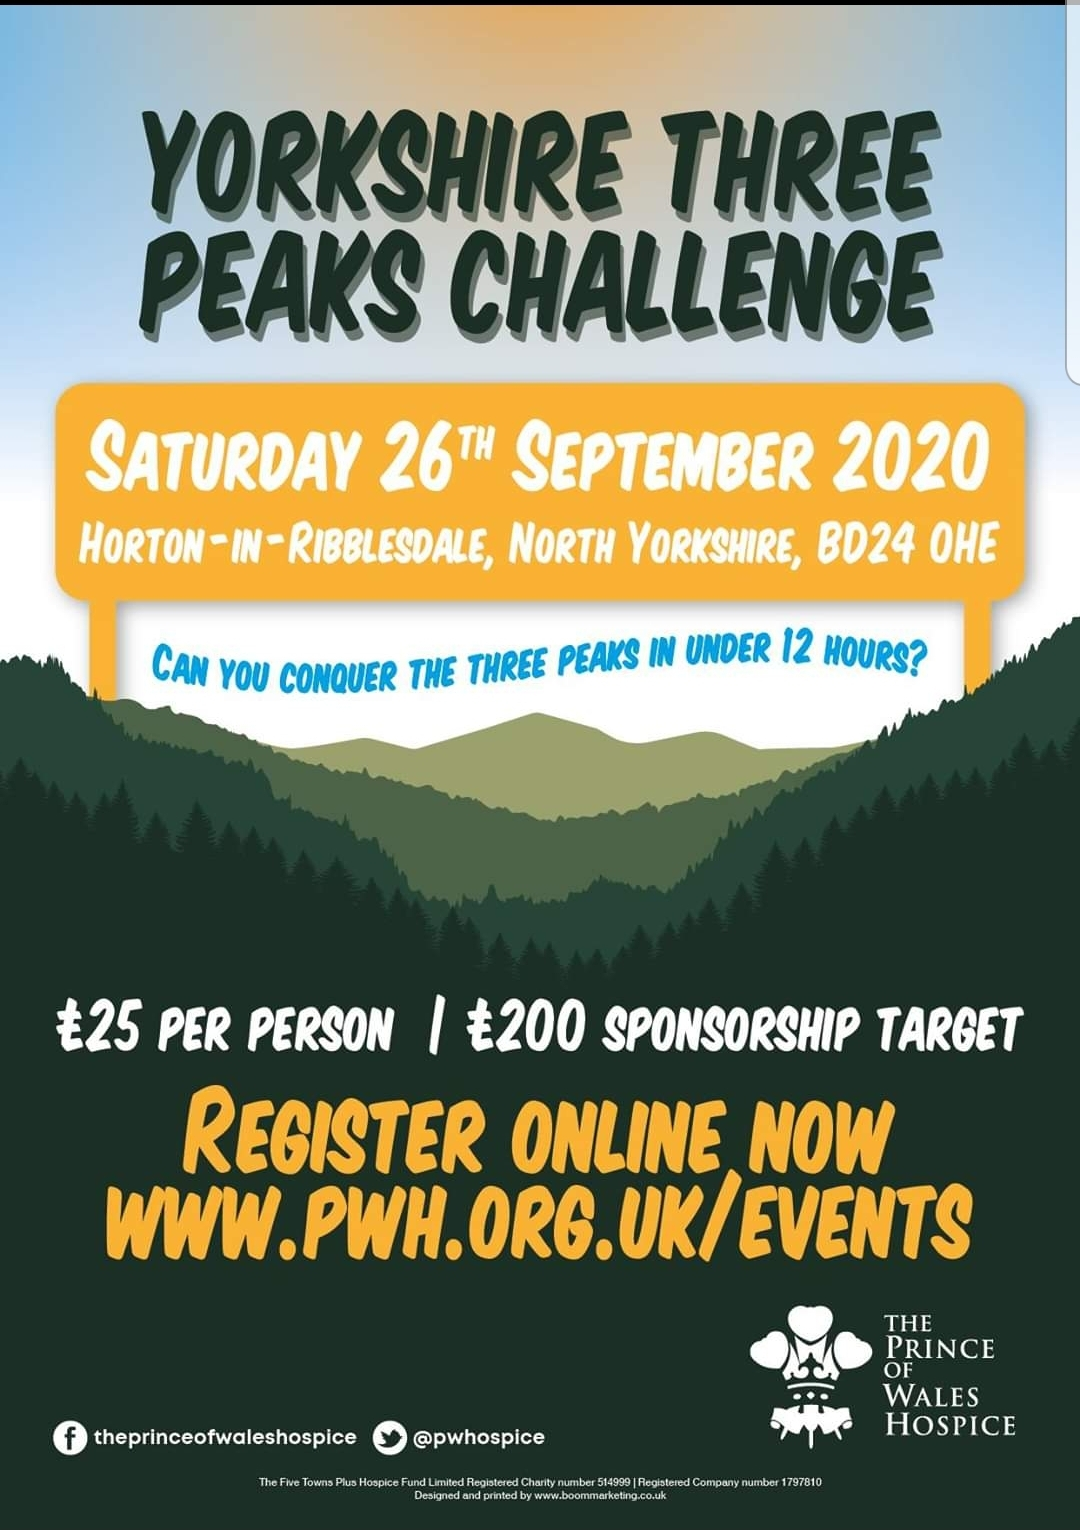 Dawn Smith's Yorkshire 3 Peaks